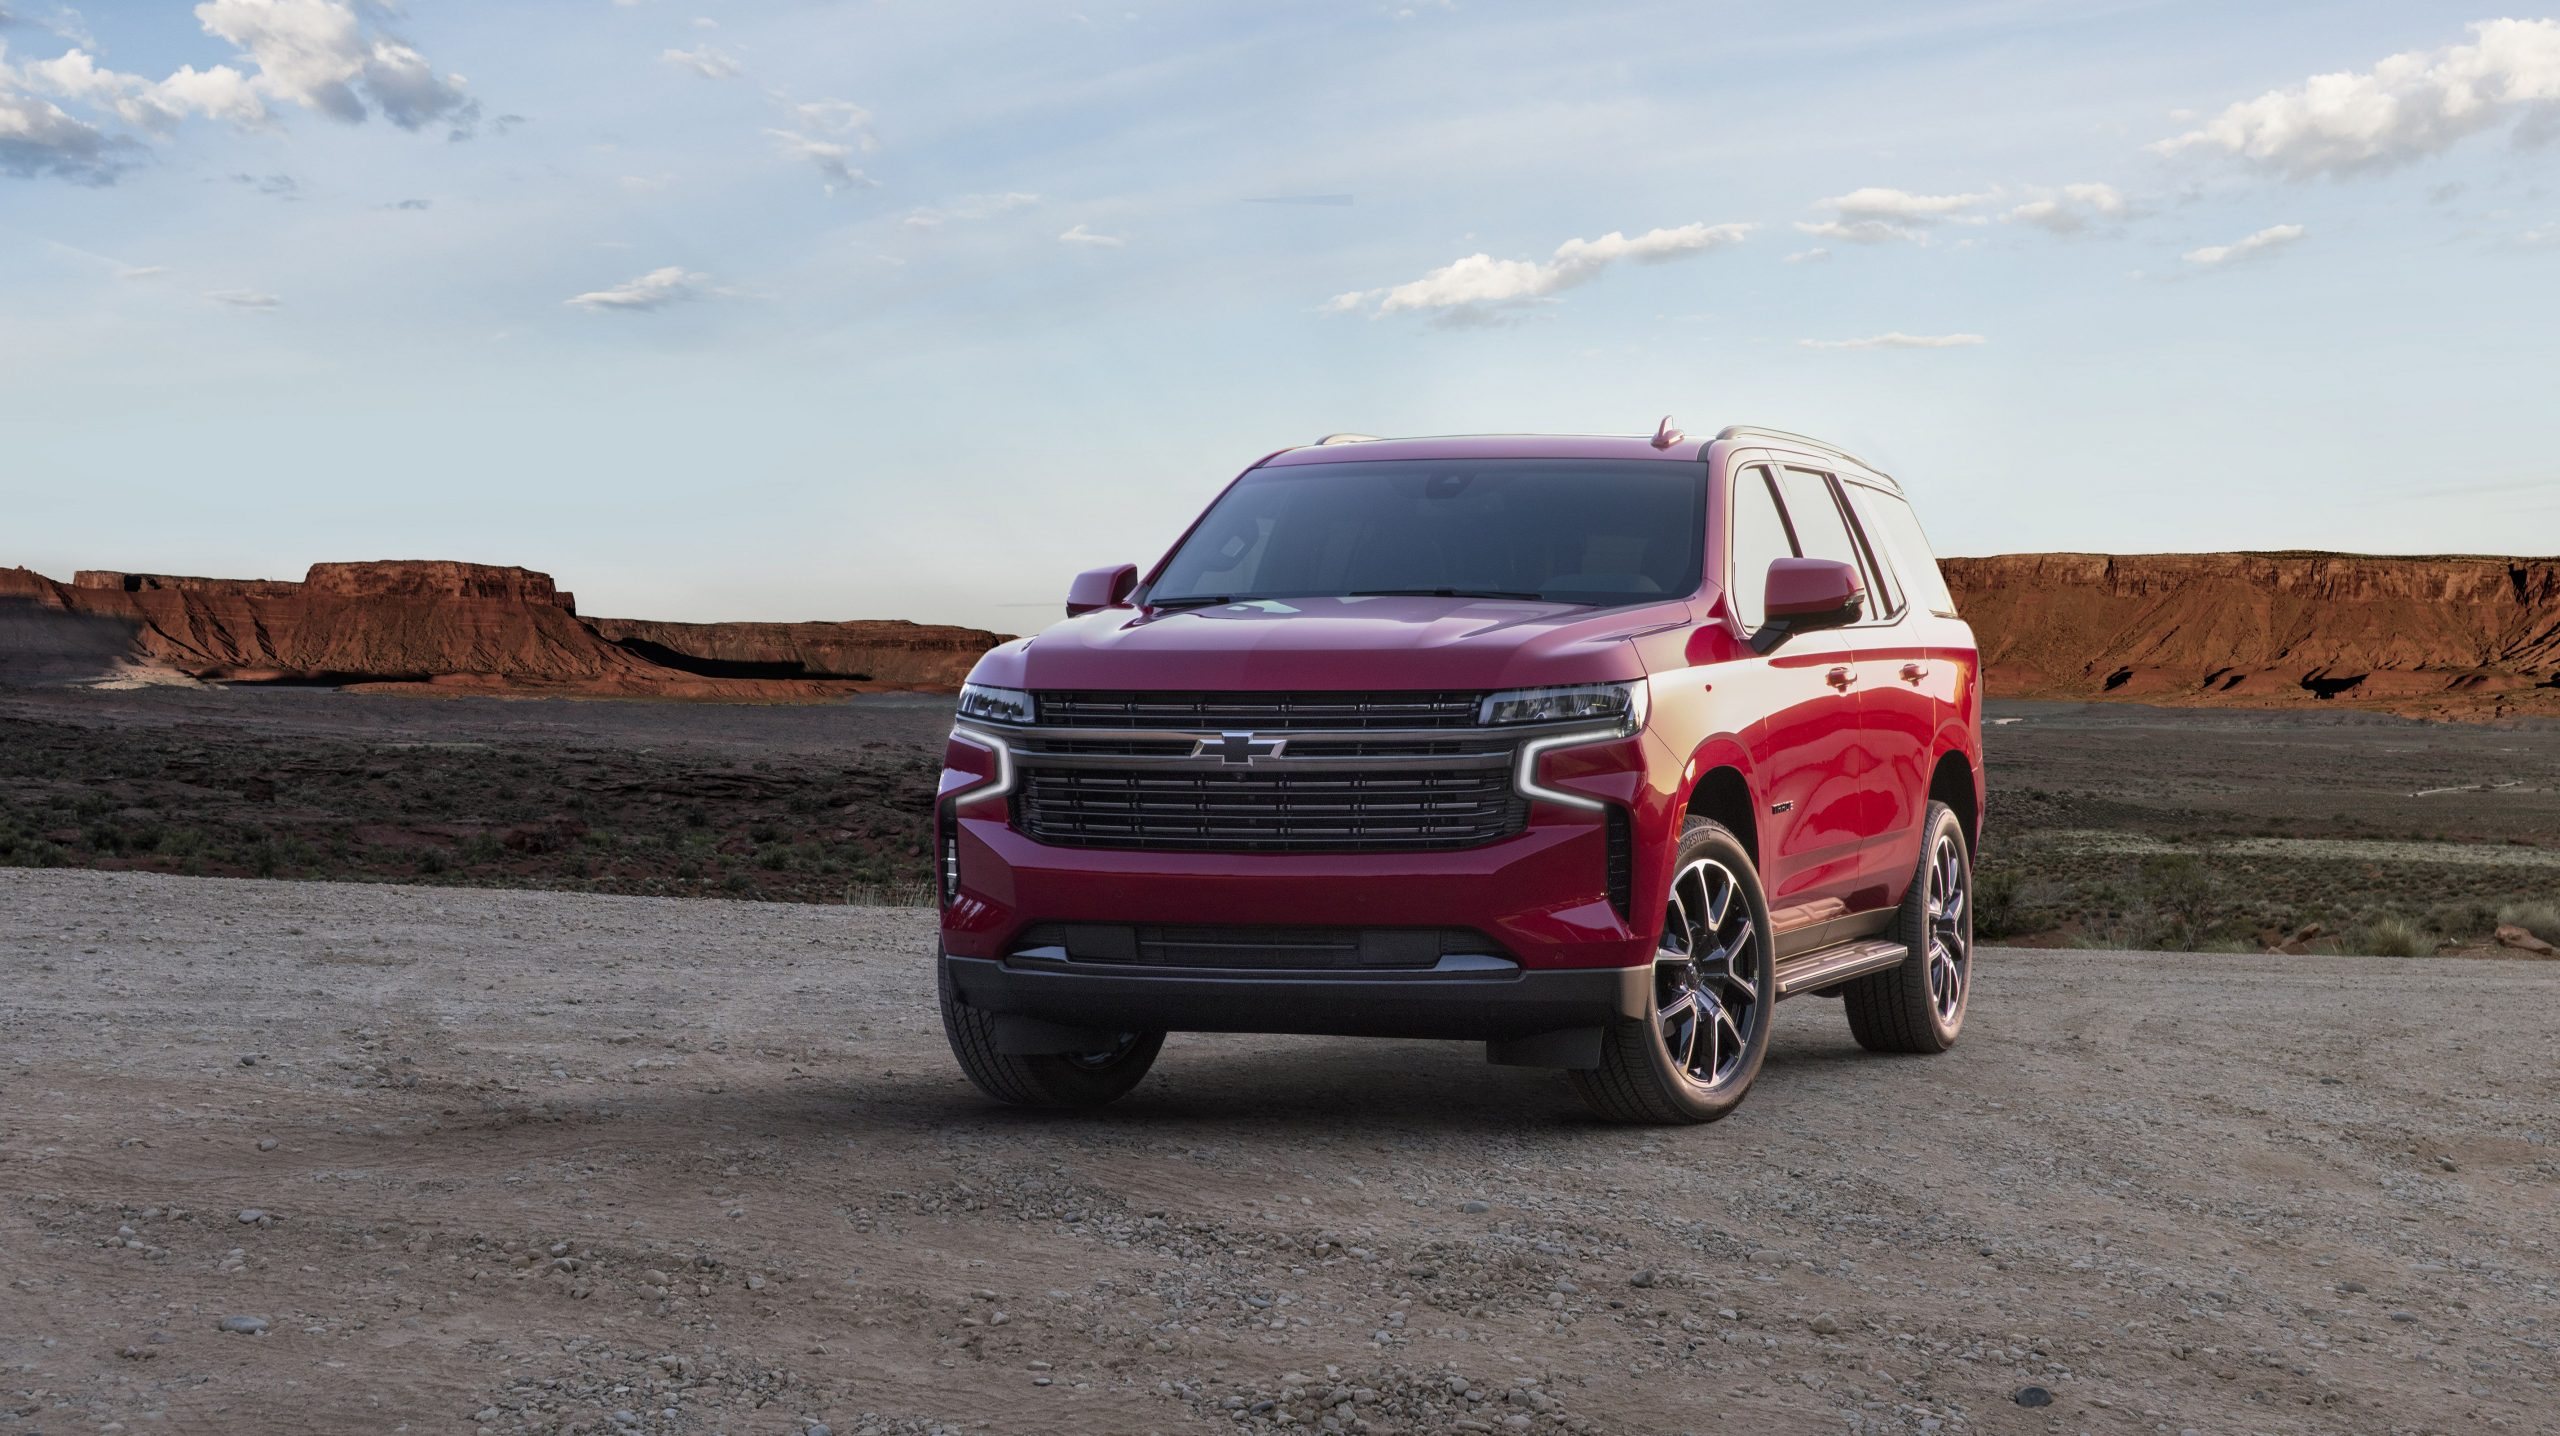 2021 Chevrolet Tahoe: What We Know So Far 2021 Chevy Suburban Towing, Trim Levels, Tires